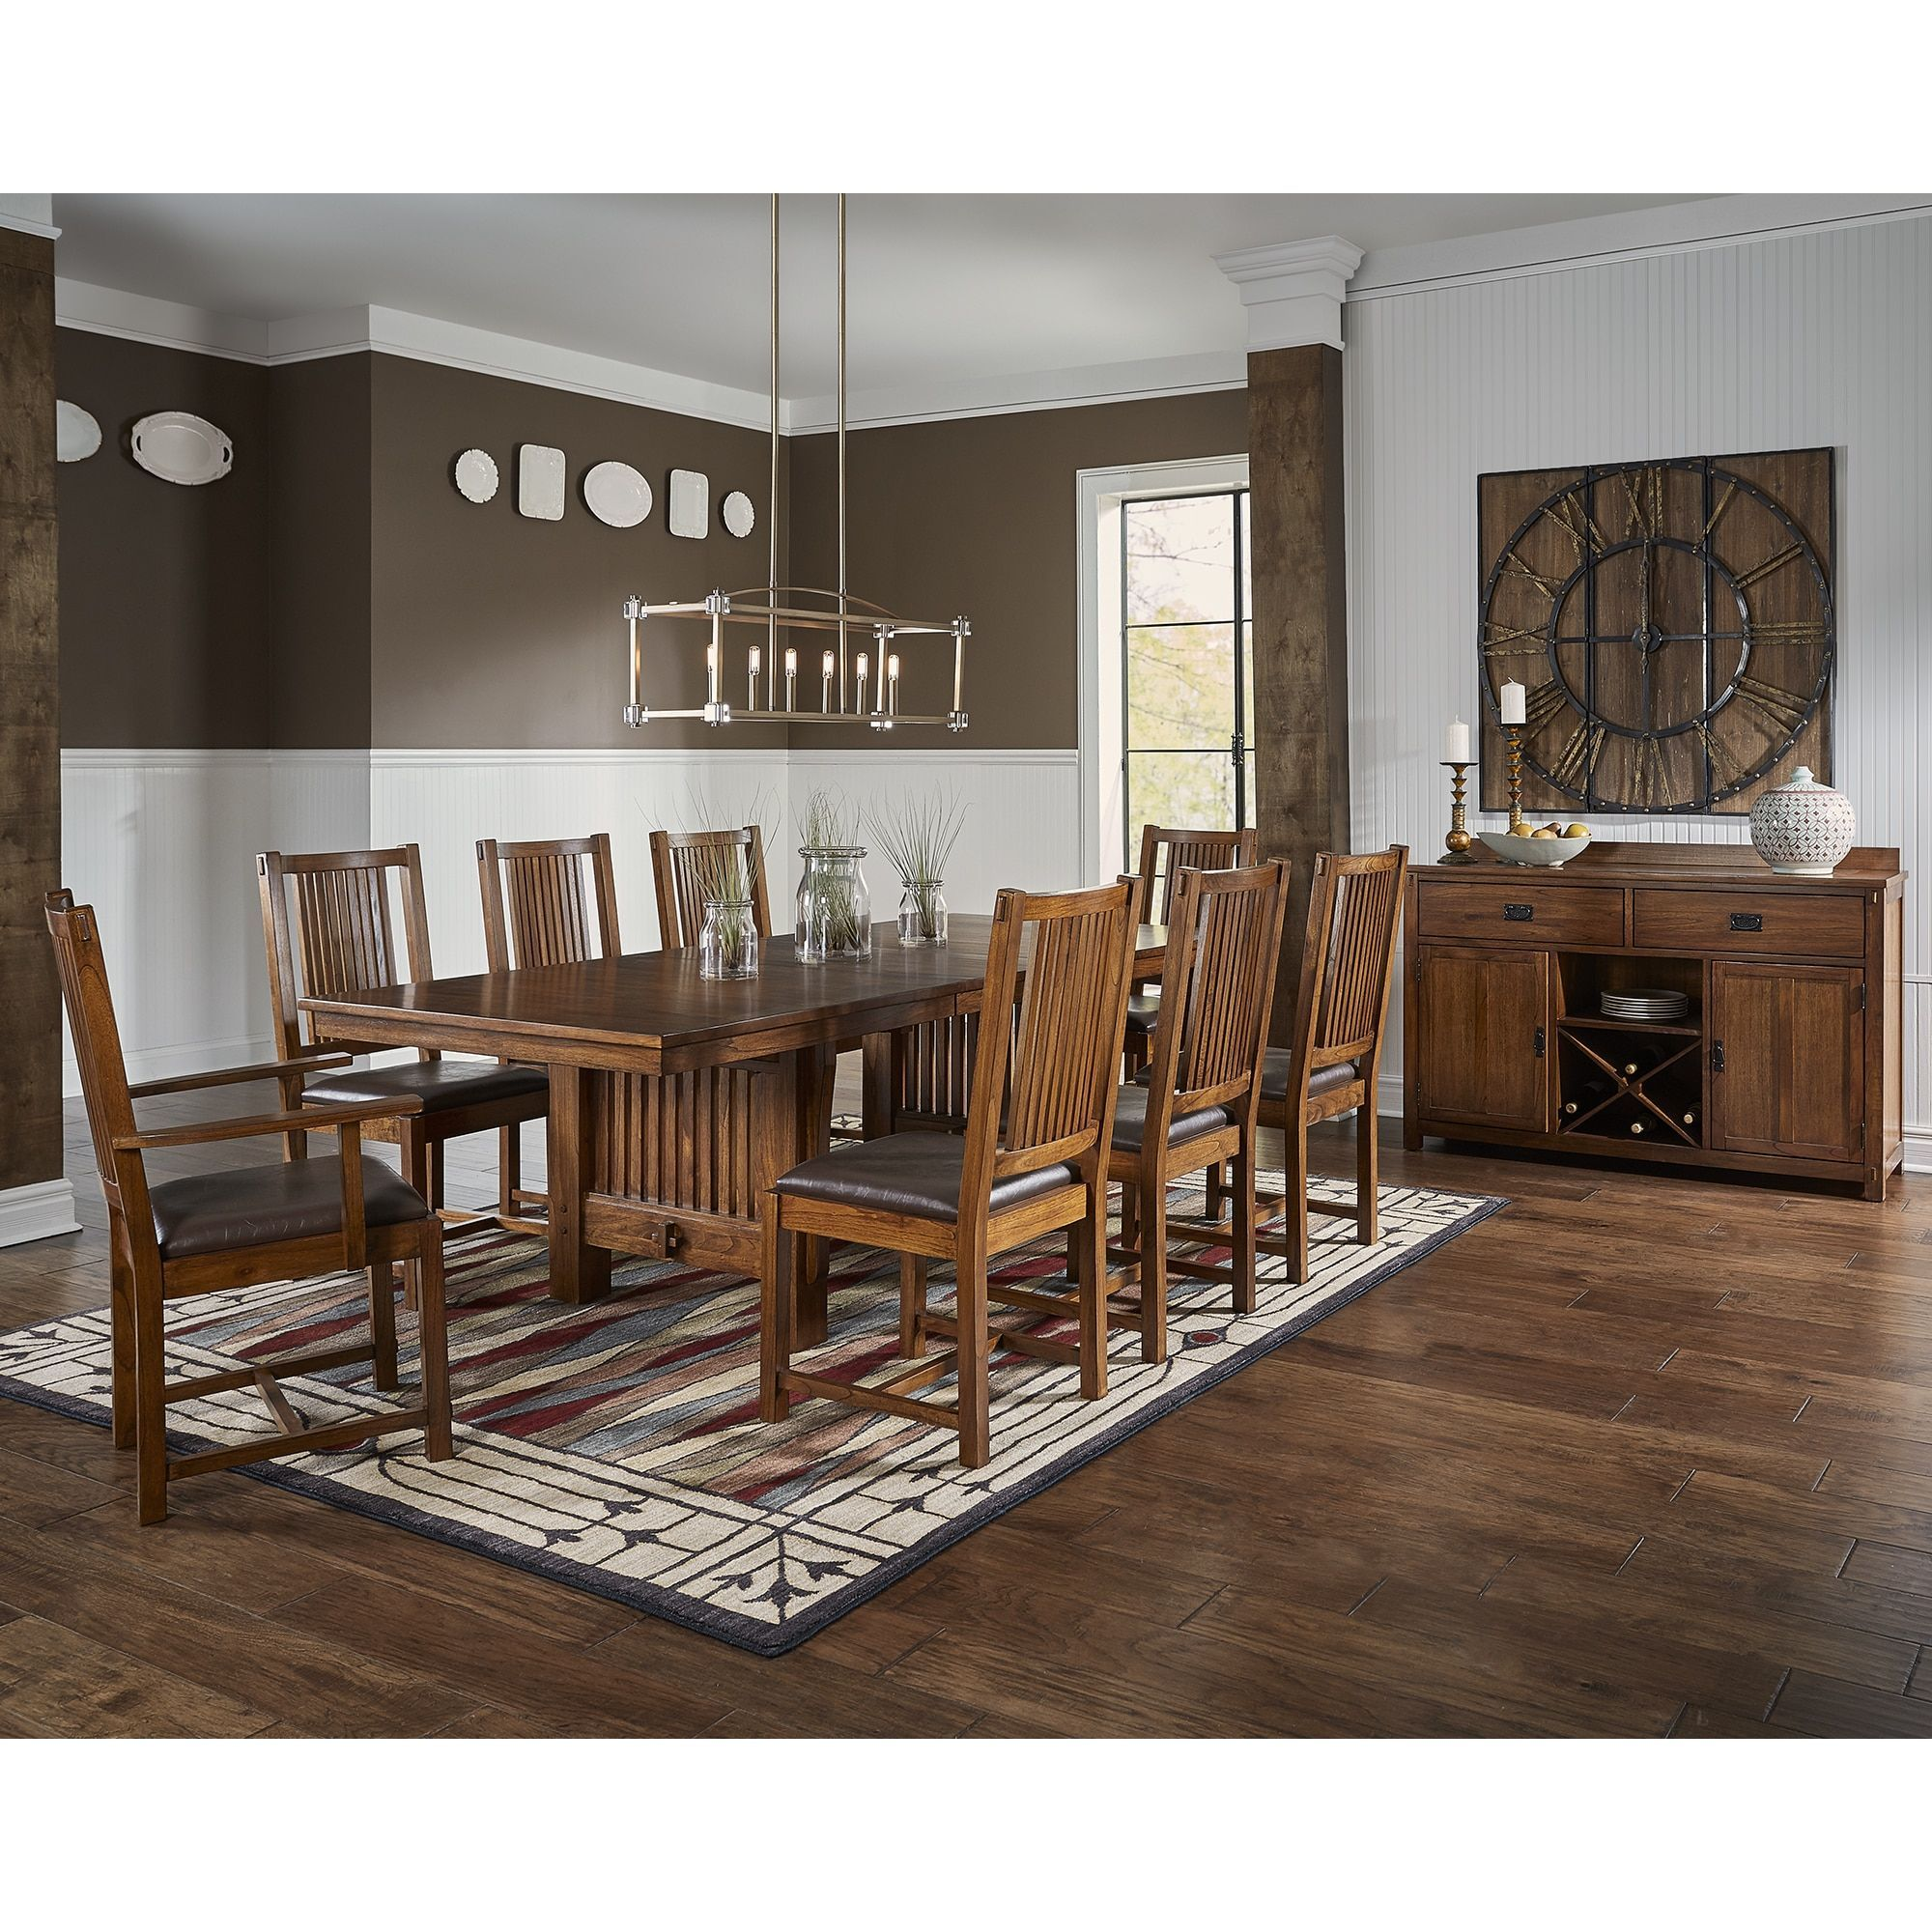 Dining Room Table Size For 10 Interesting Gemma 10Piece Solid Wood Dining Set Gemma 10Pc Solid Wood Dining Design Inspiration